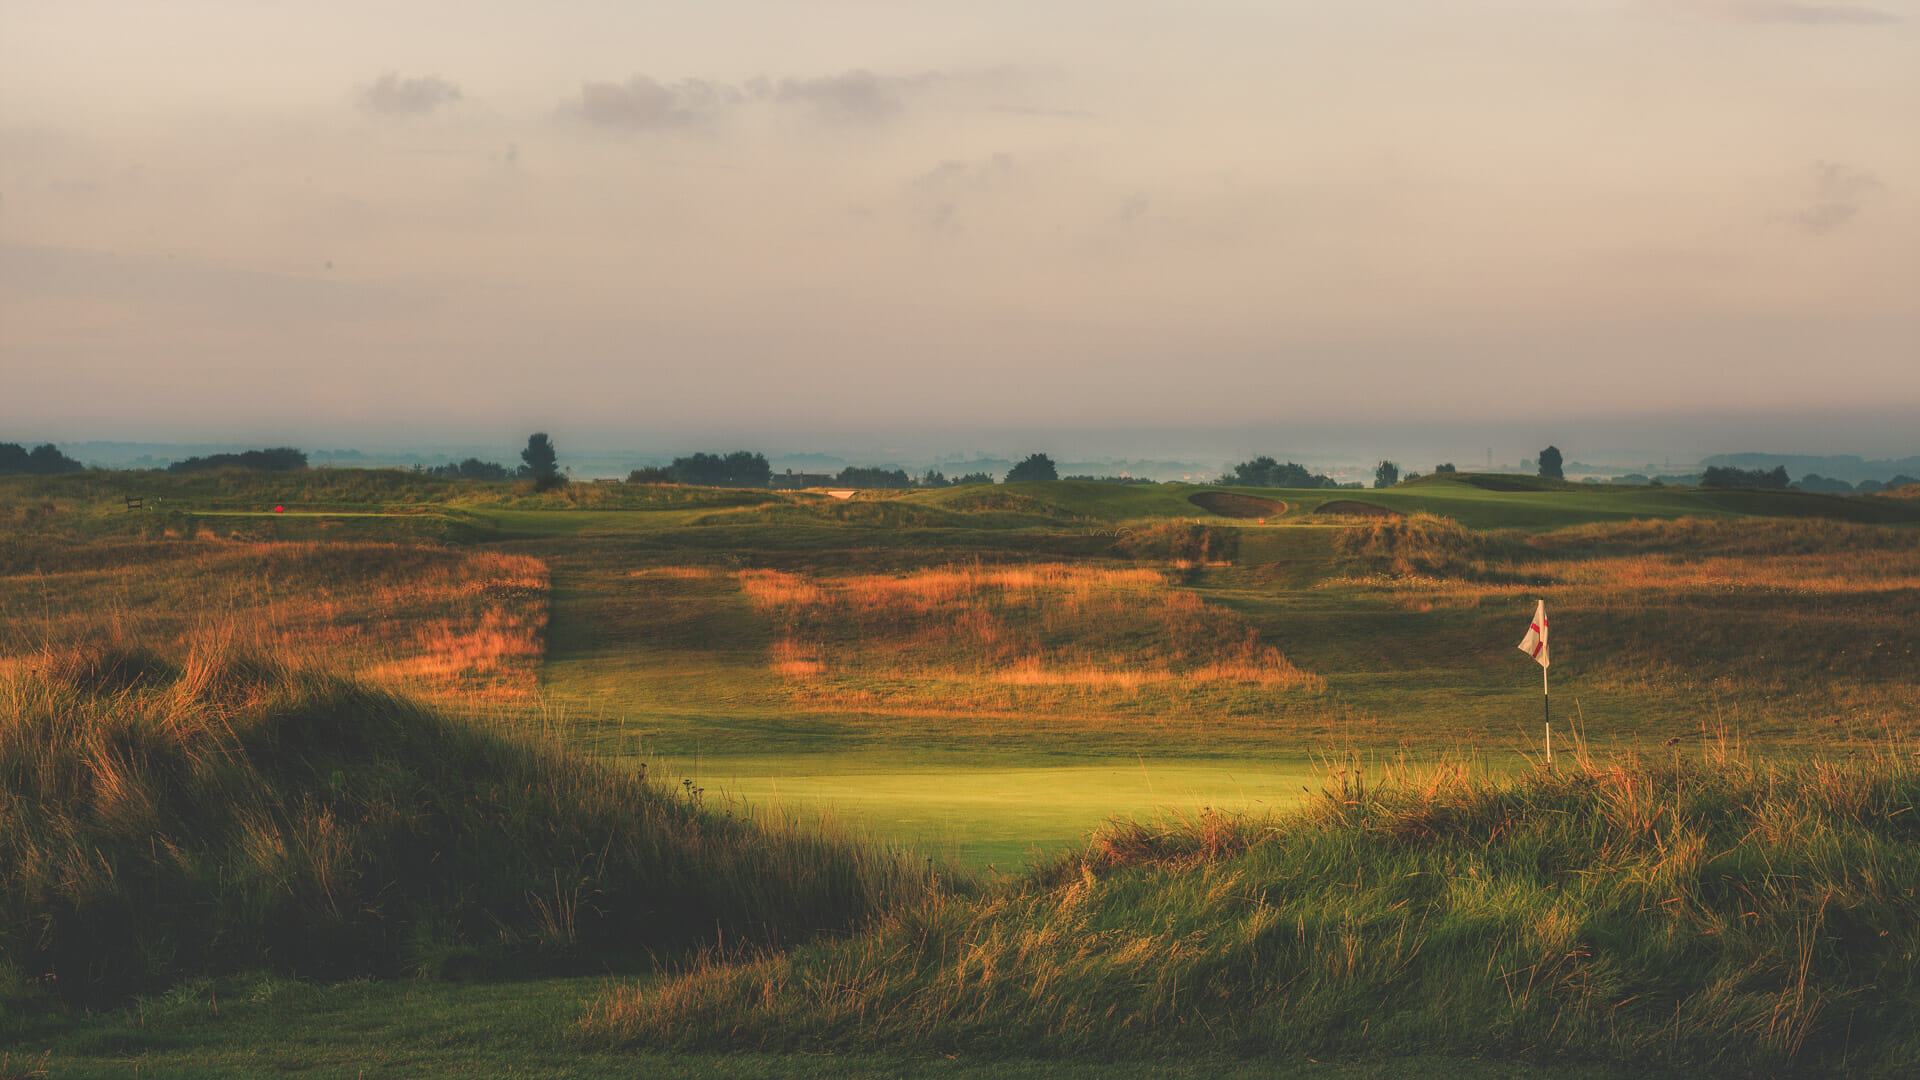 Image of the 11th hole at Royal St. George's Golf Course, Kent, England